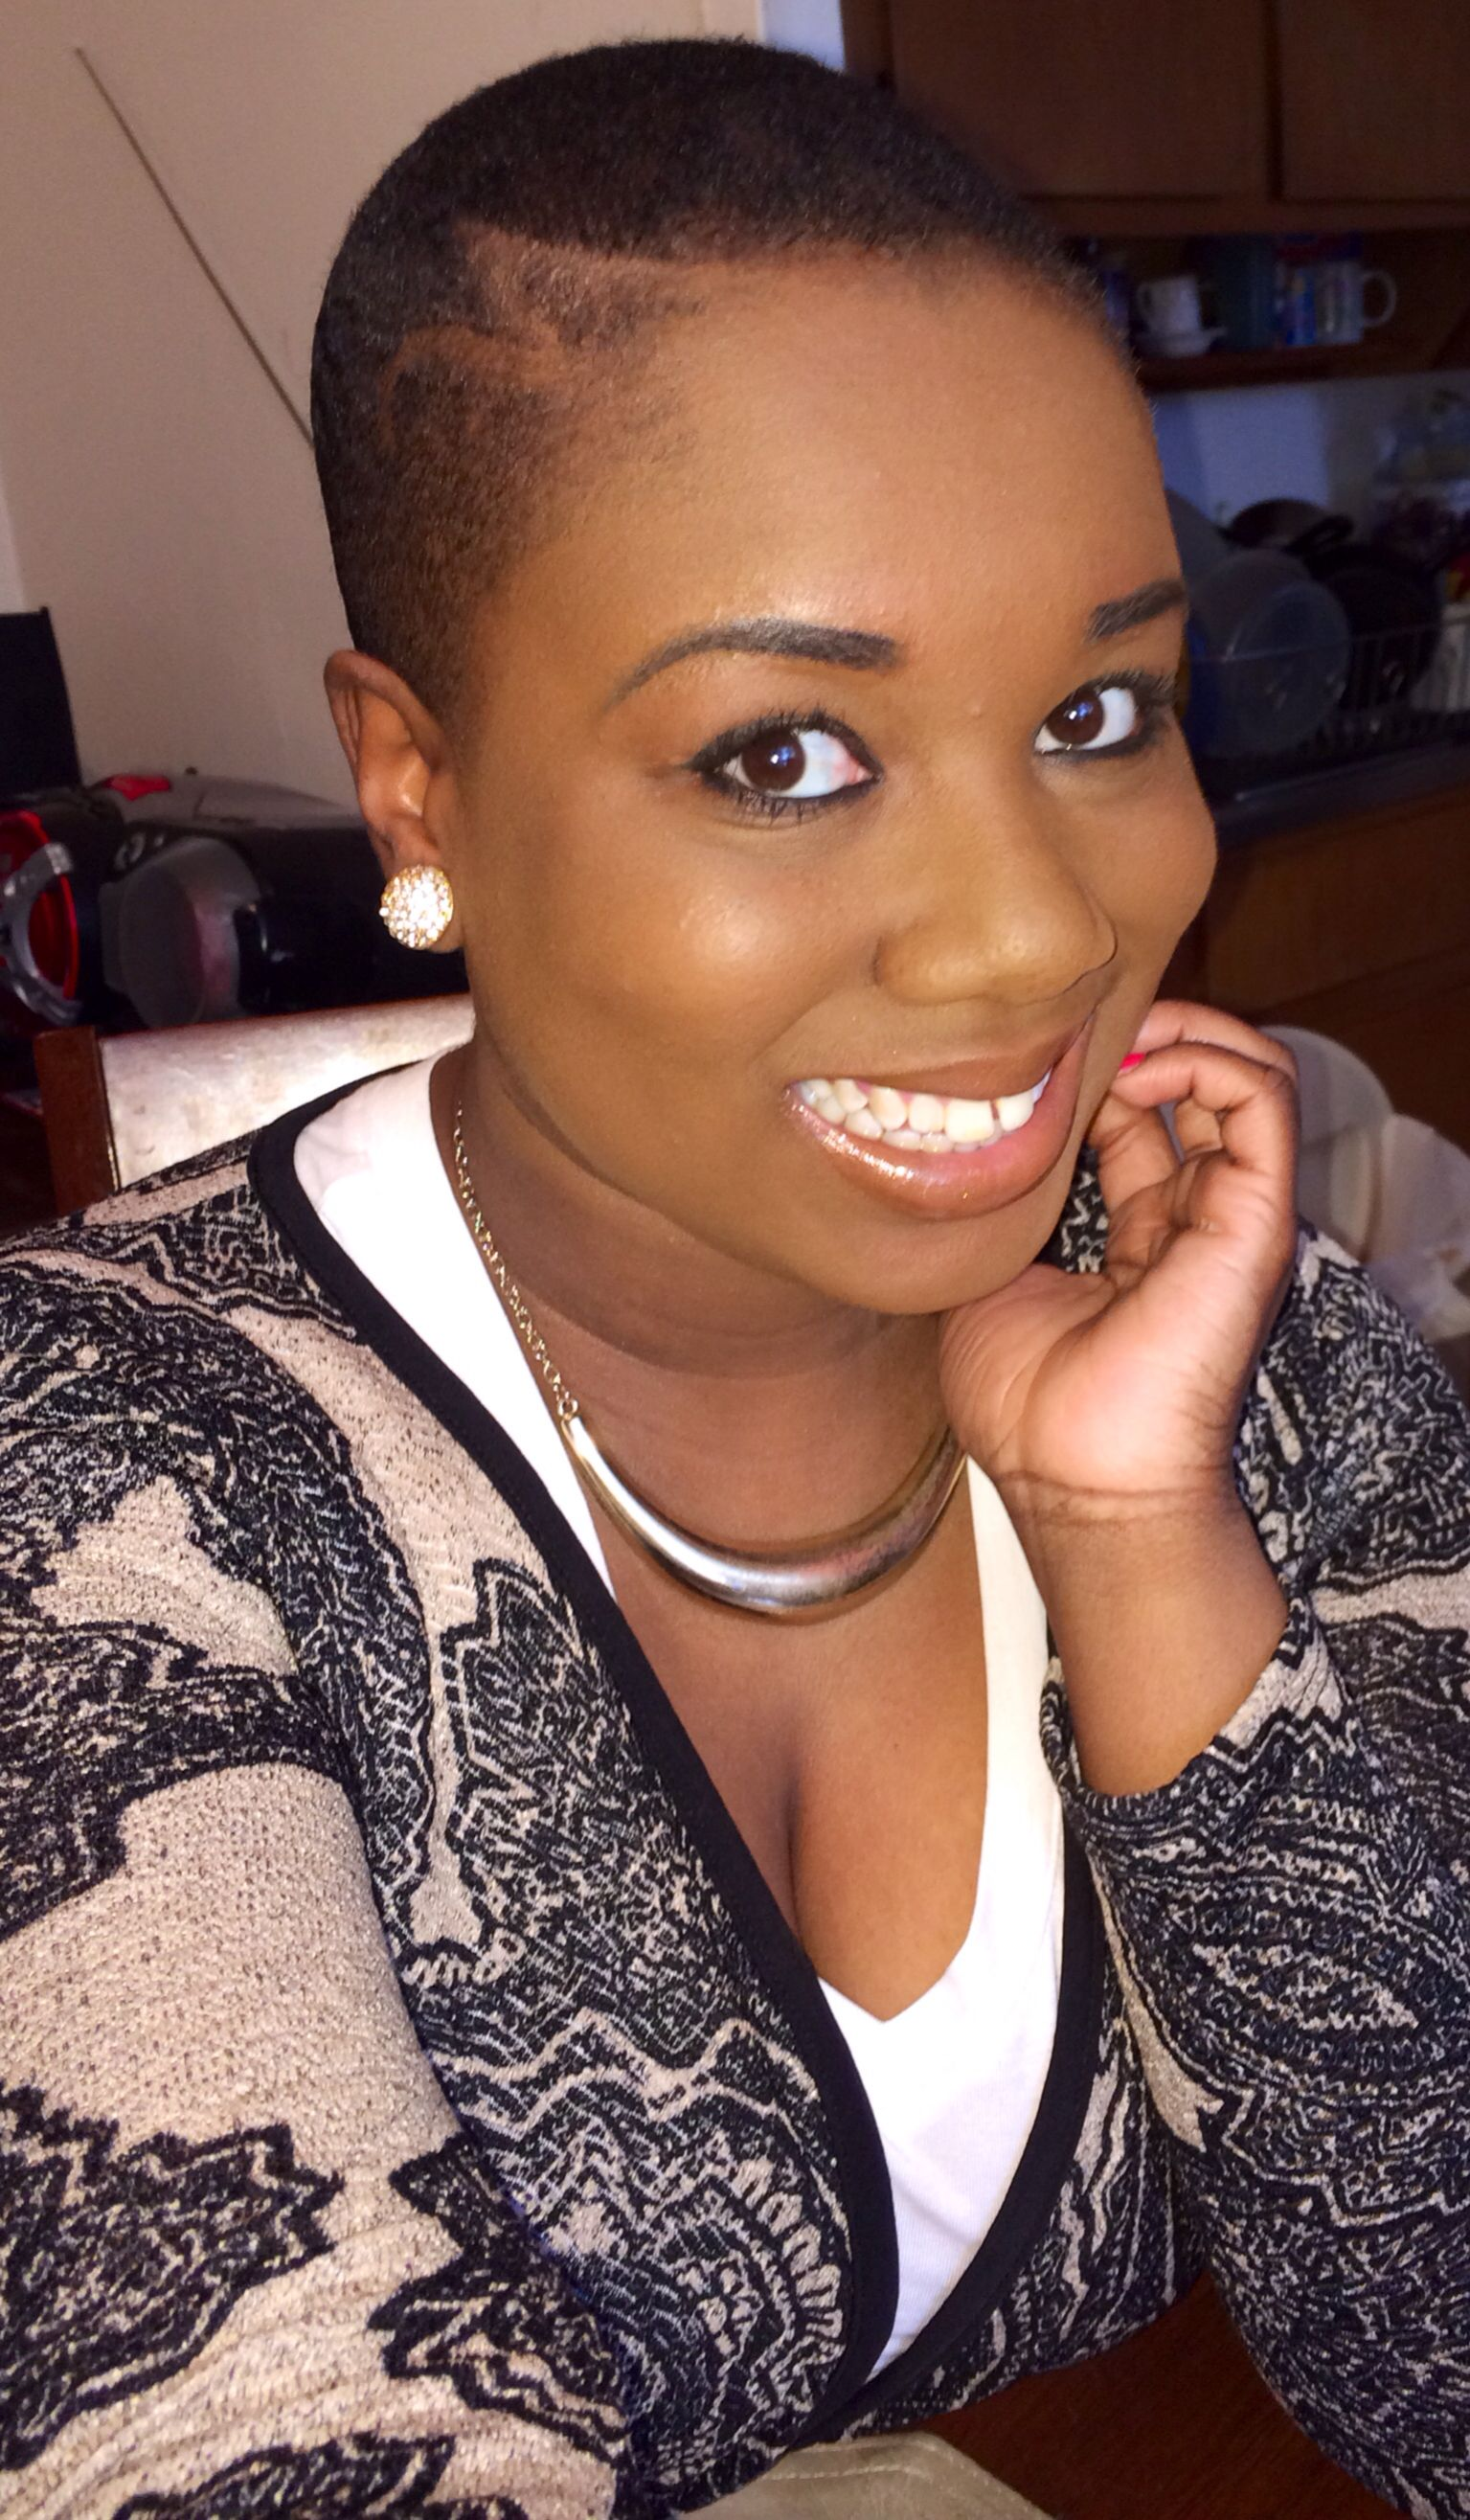 Natural hairstyles for short hair black women hair and tattoos - Find This Pin And More On Why I Think All Black Women Are Beautiful I Hope To Join This Group One Day Me Fade Haircut With Simple Design Natural Hair